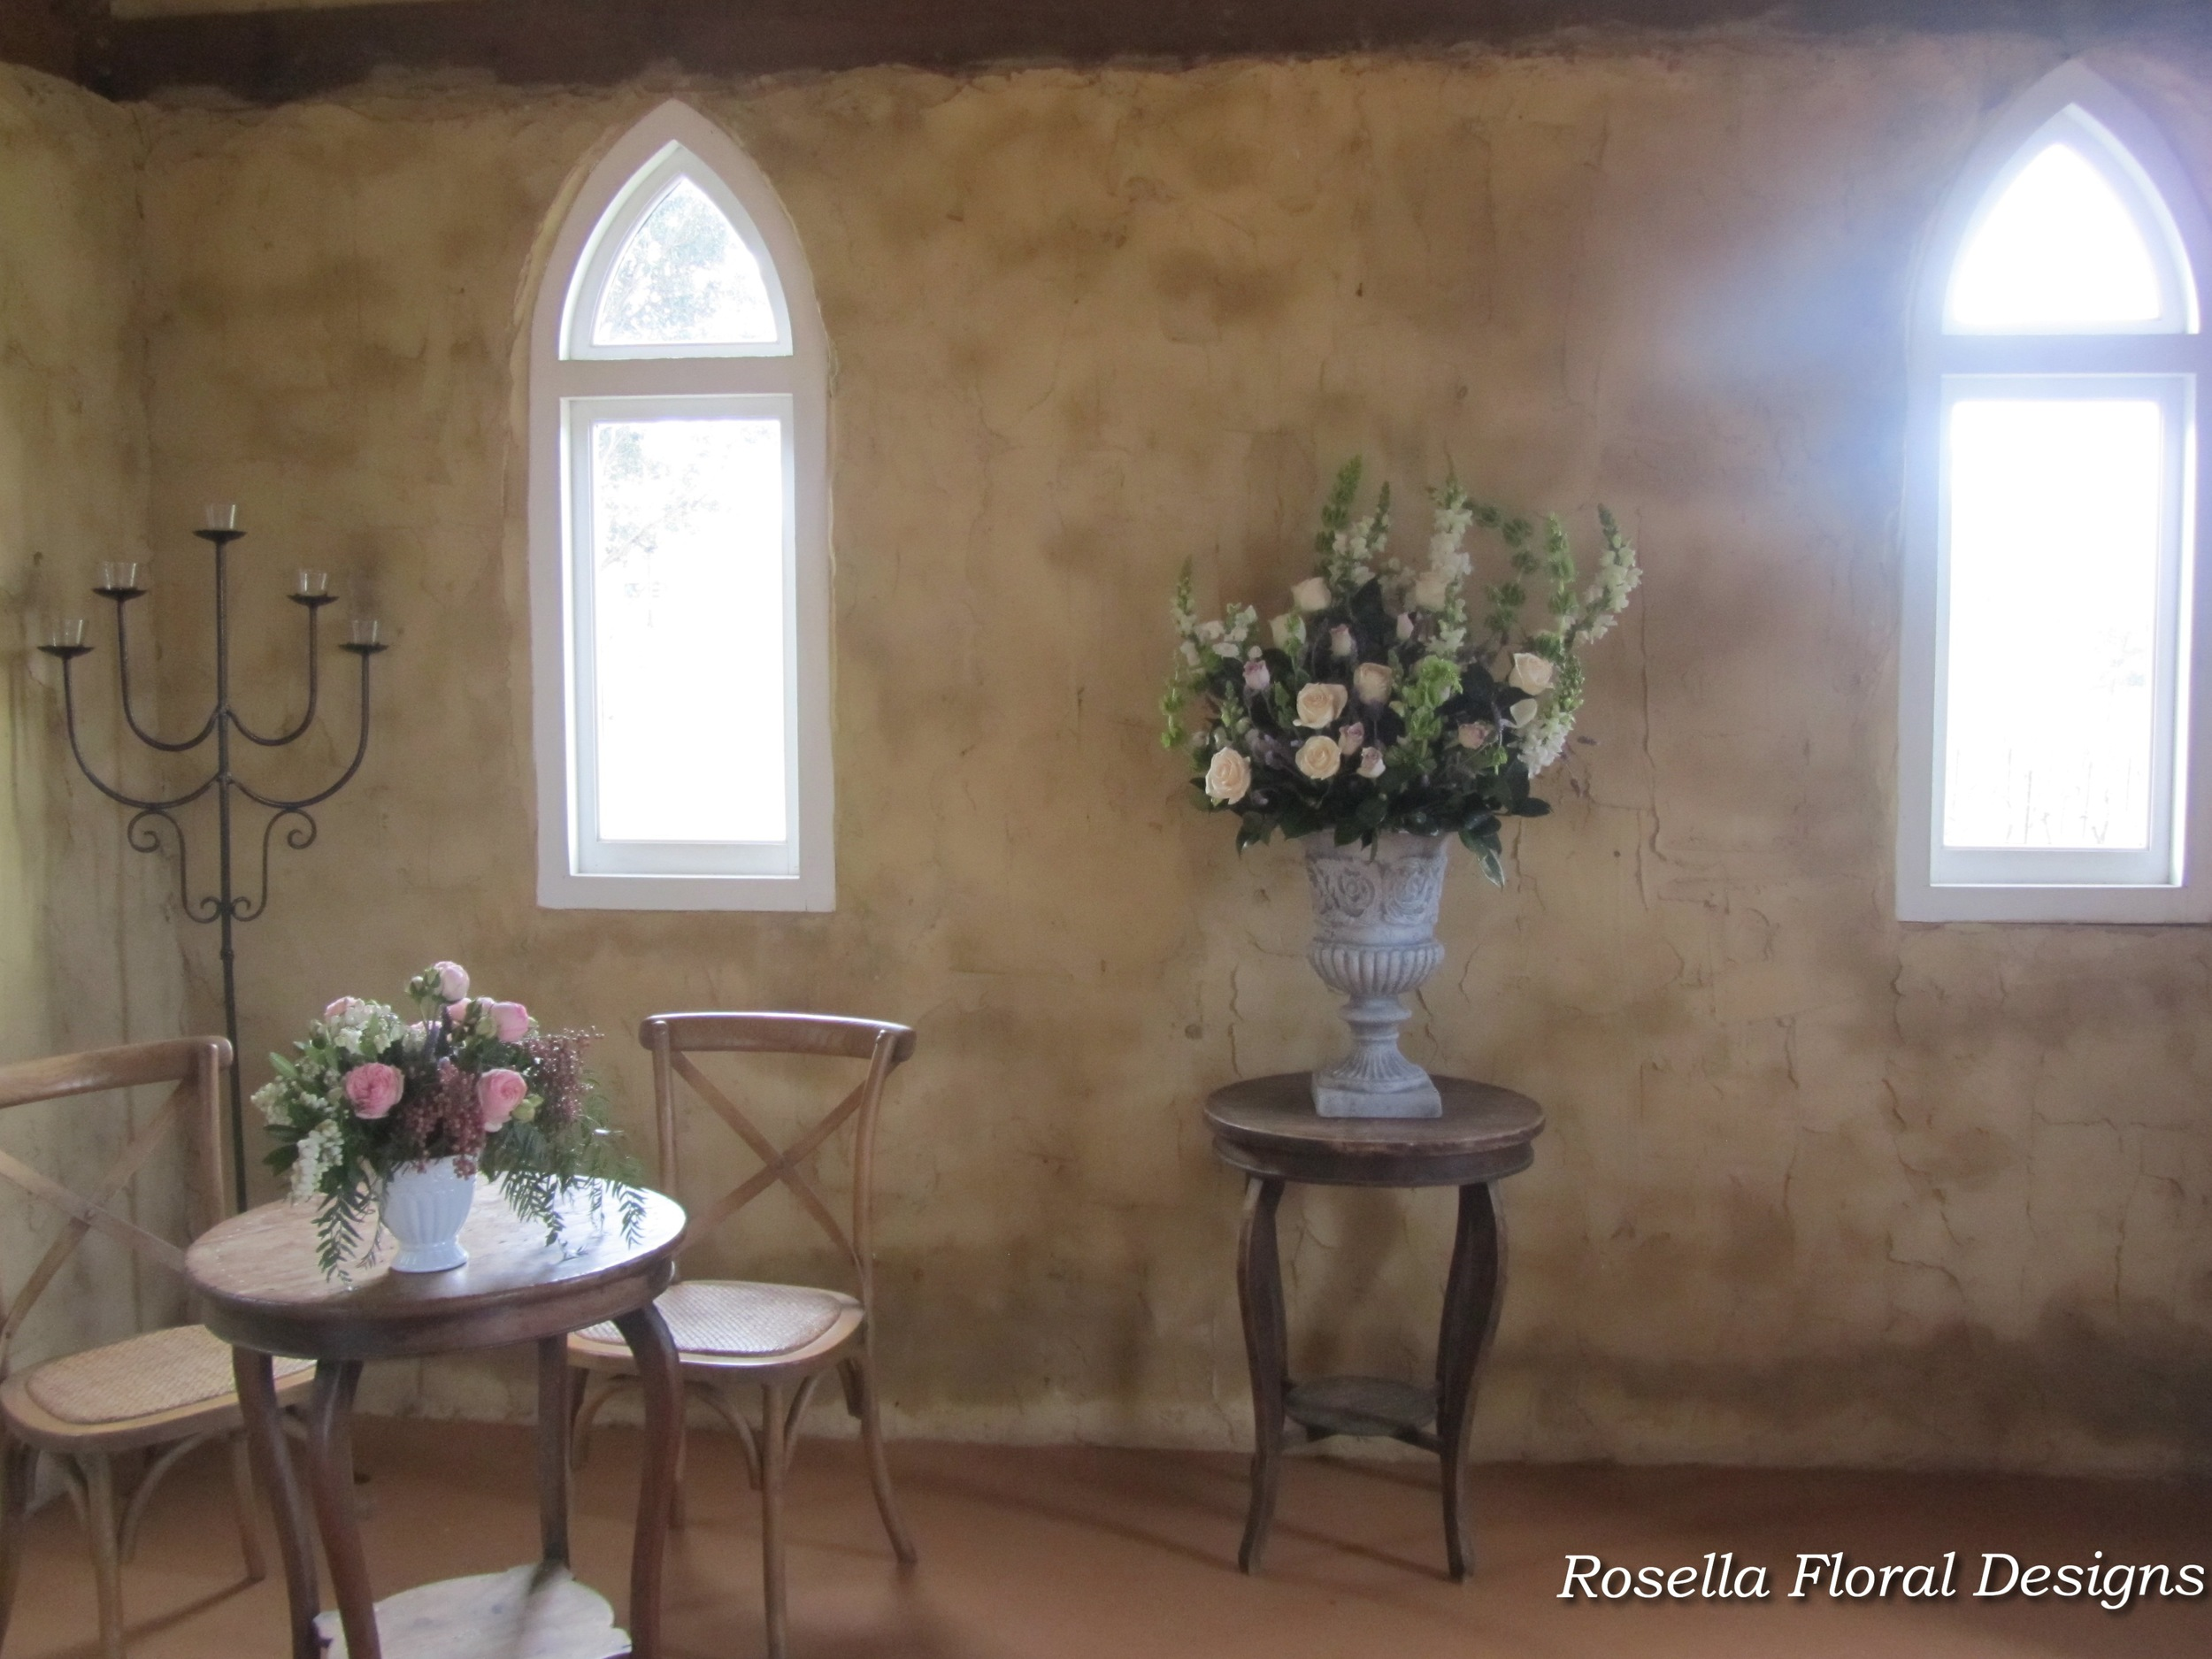 Chapel flowers for country rustic wedding.jpg